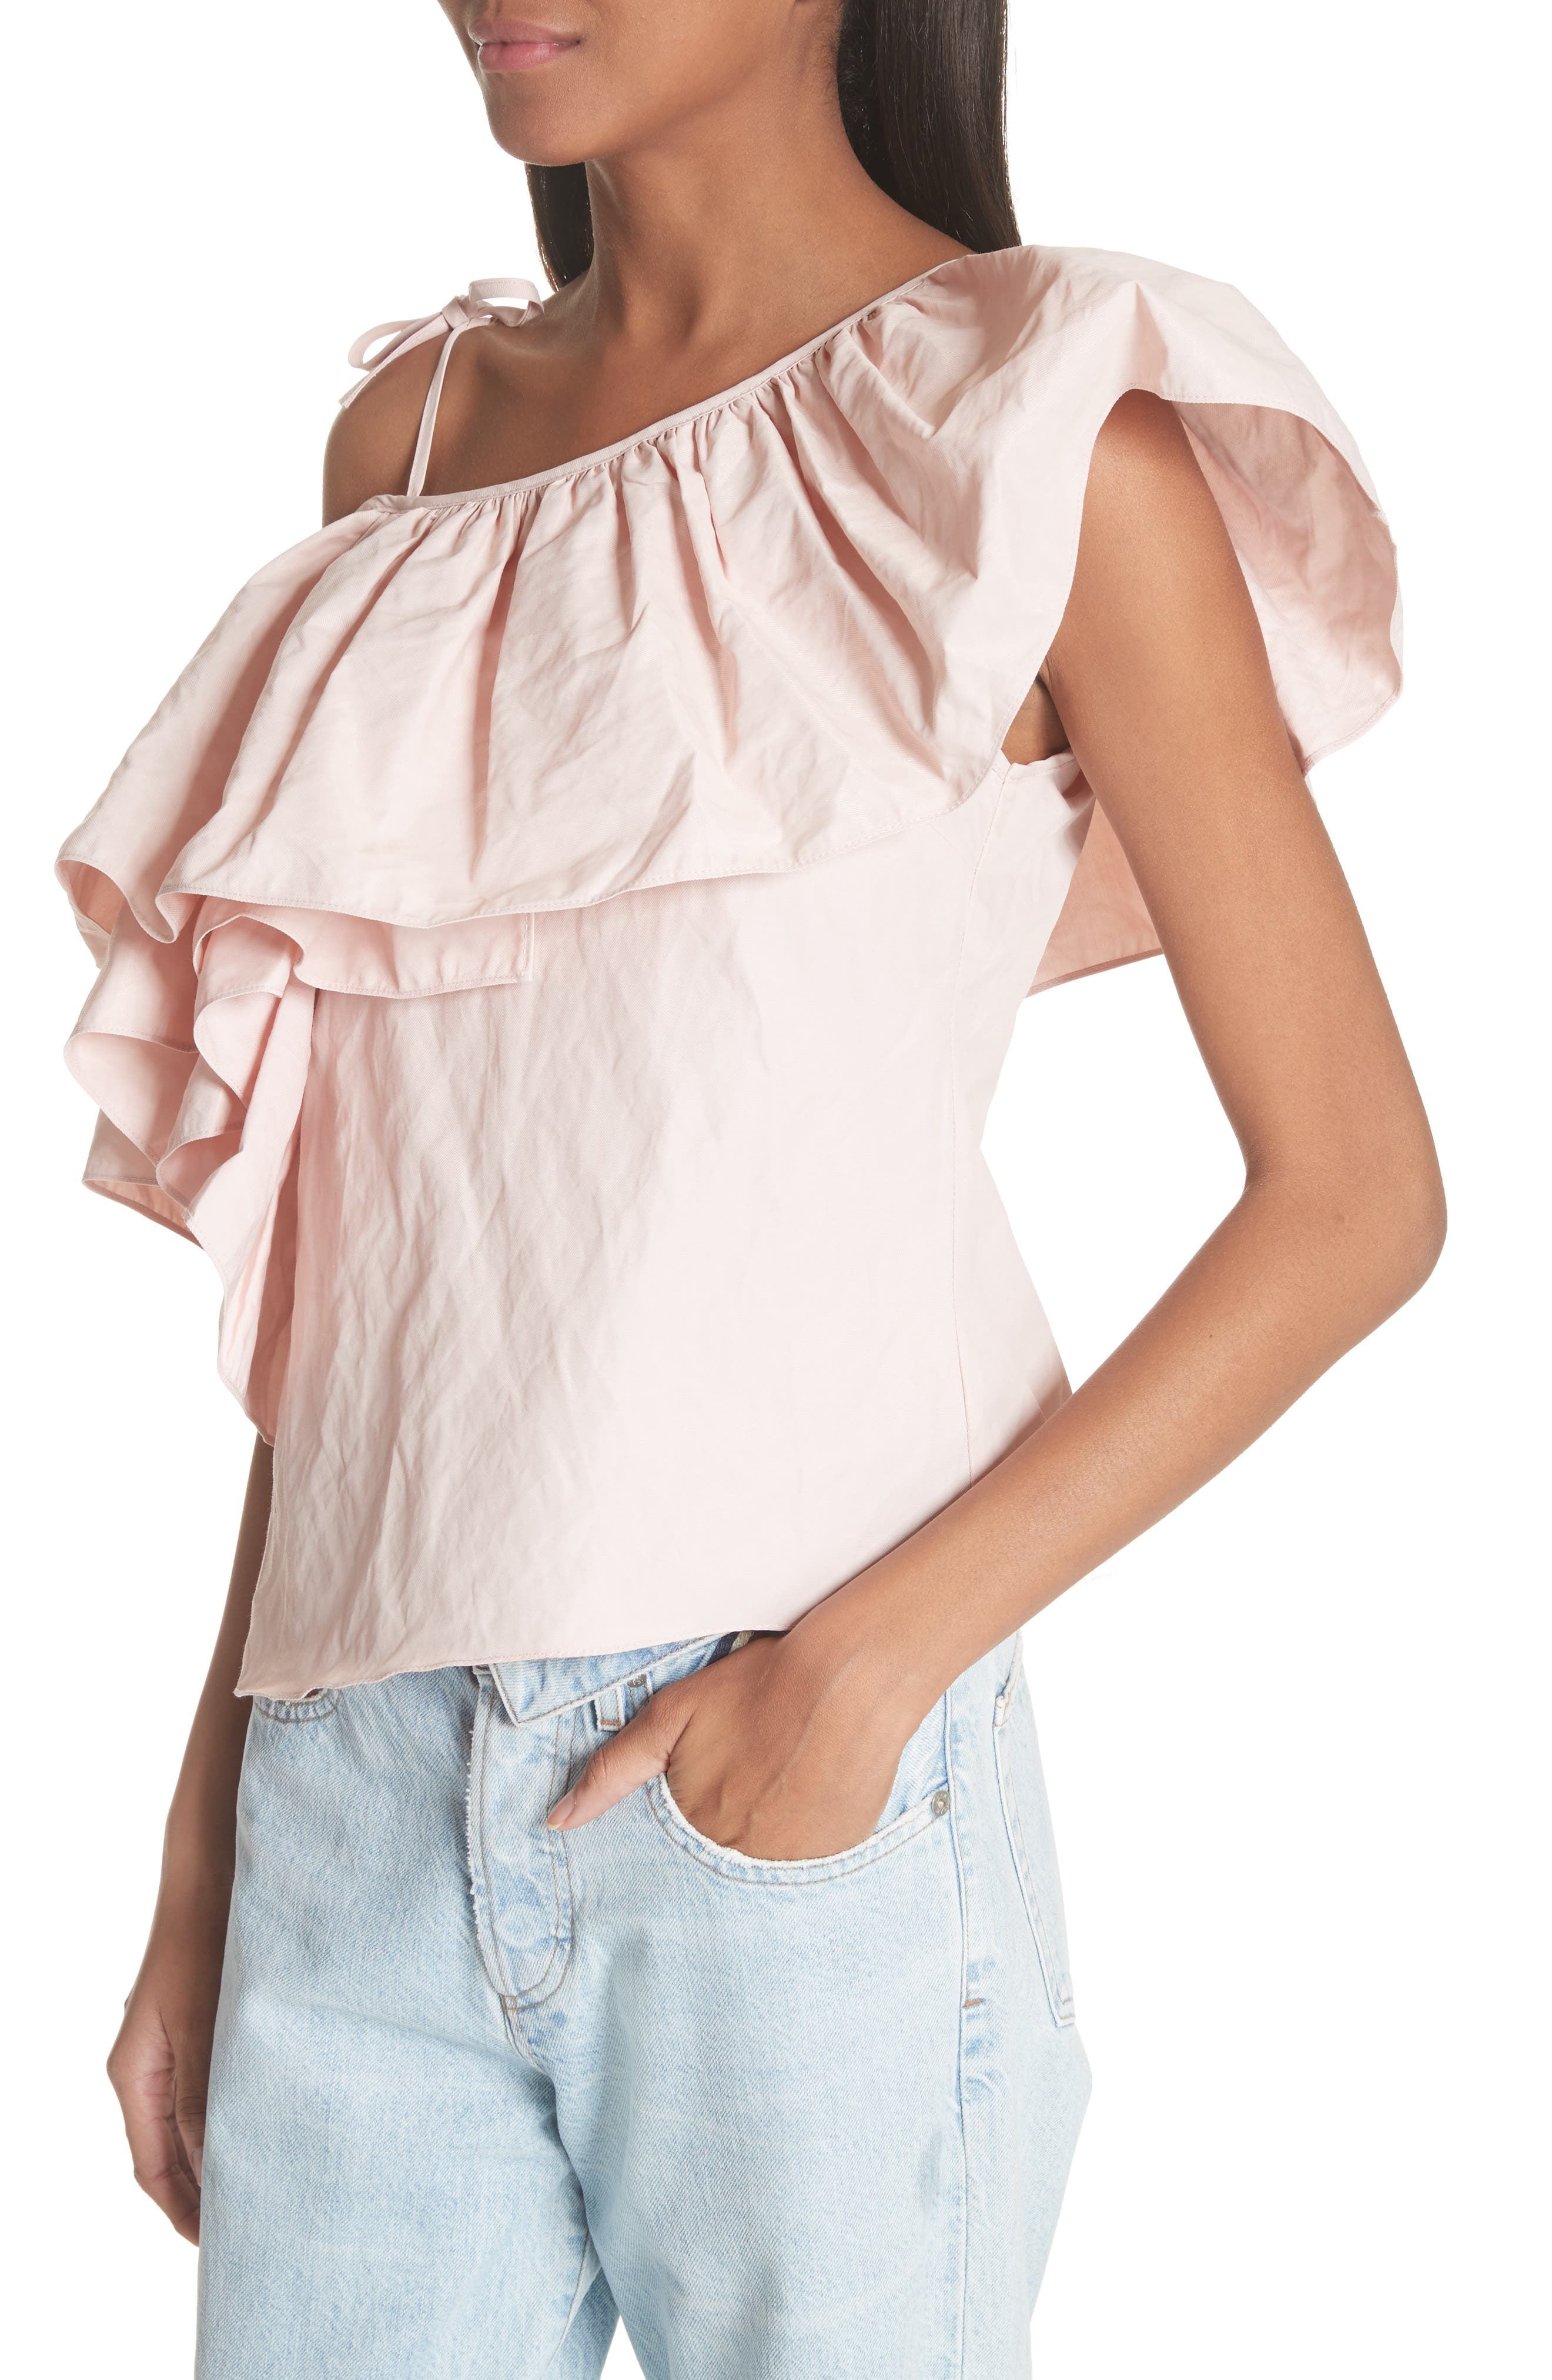 Marques'Almeida One Shoulder Ruffle Top,                             Alternate thumbnail 4, color,                             650